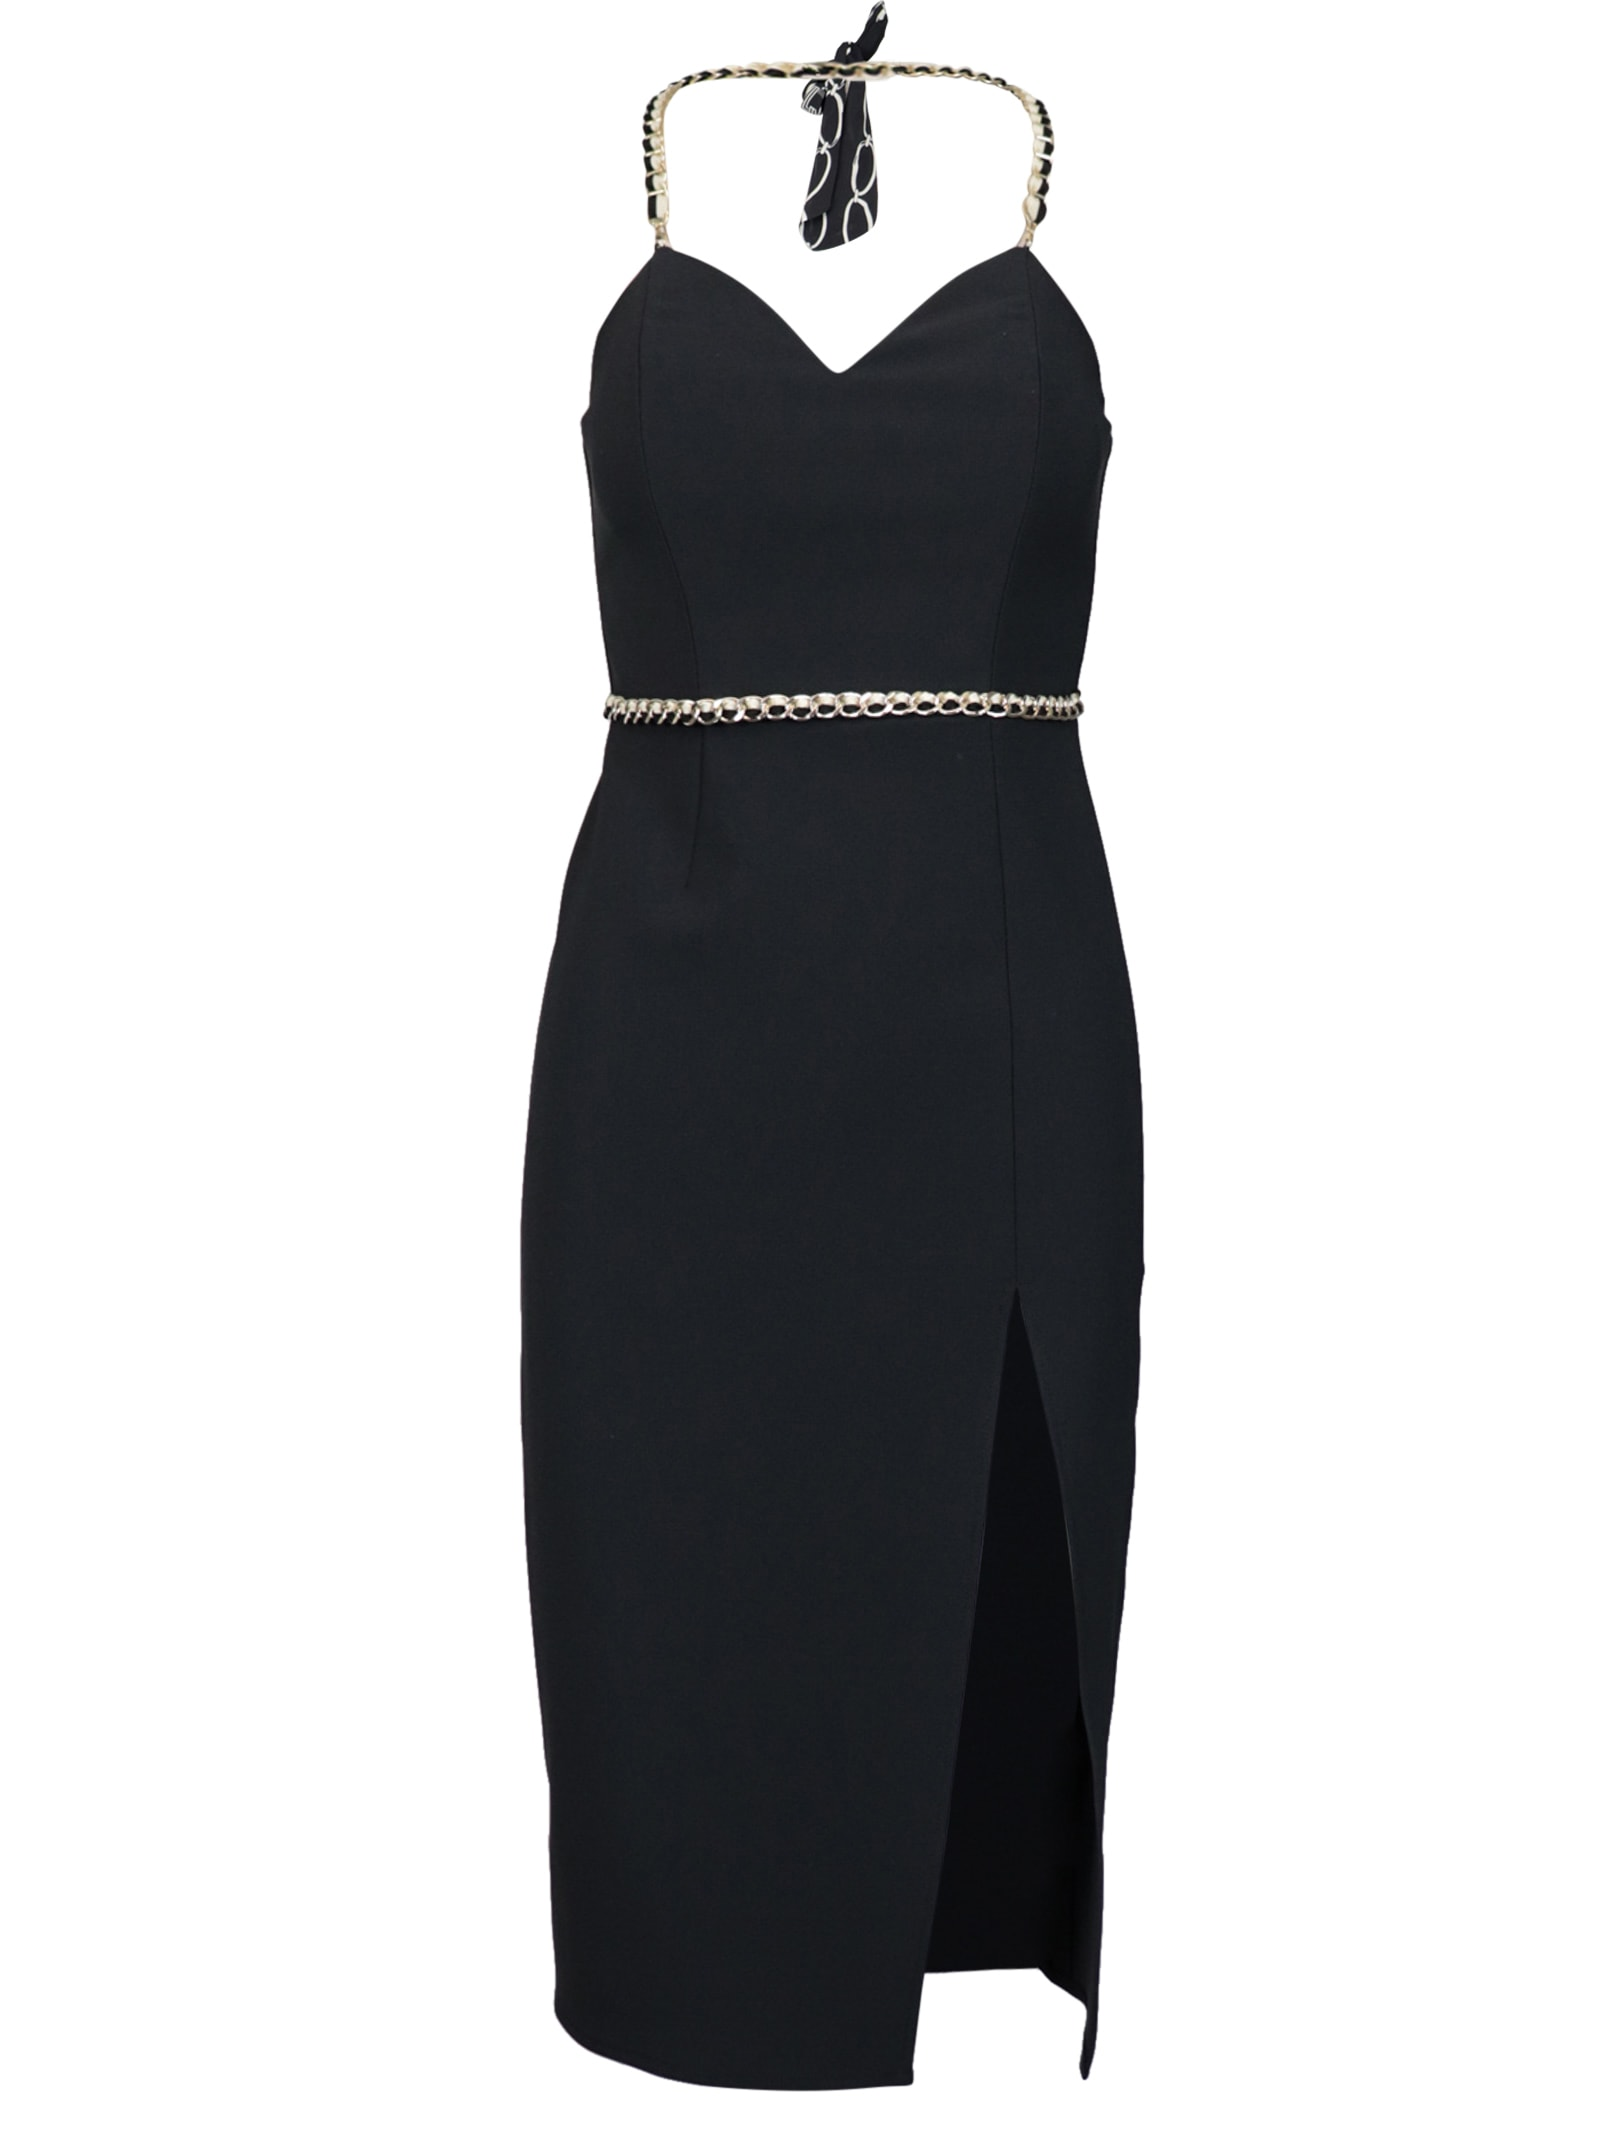 Buy Elisabetta Franchi Celyn B. Mini With Gold Chain Dress online, shop Elisabetta Franchi Celyn B. with free shipping